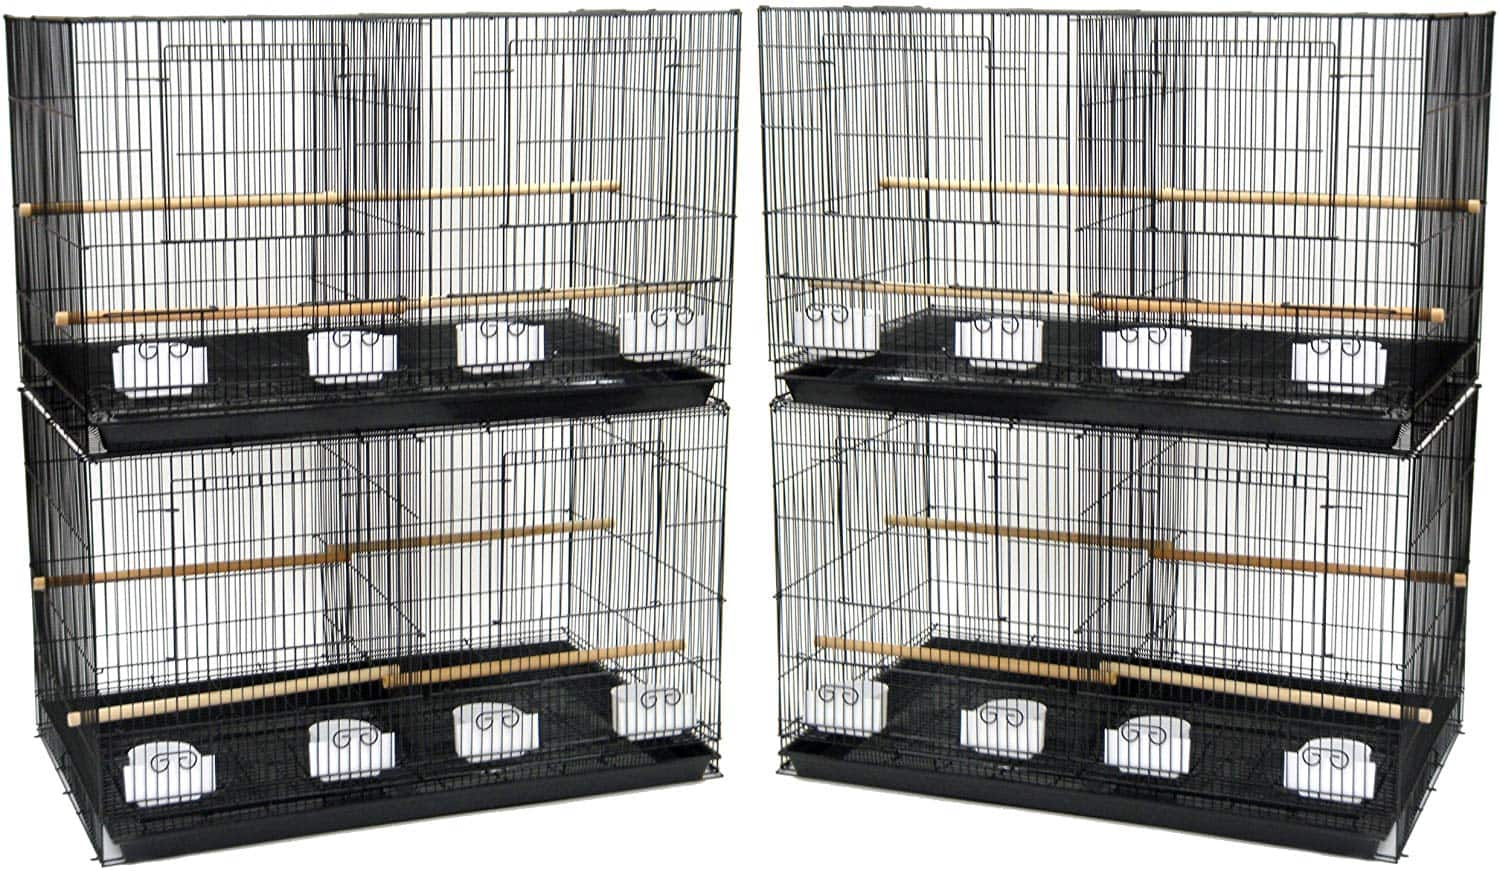 YML Medium Breeding Cages with Divider - Lot of 4 - $98.15 at Amazon + FS with Prime